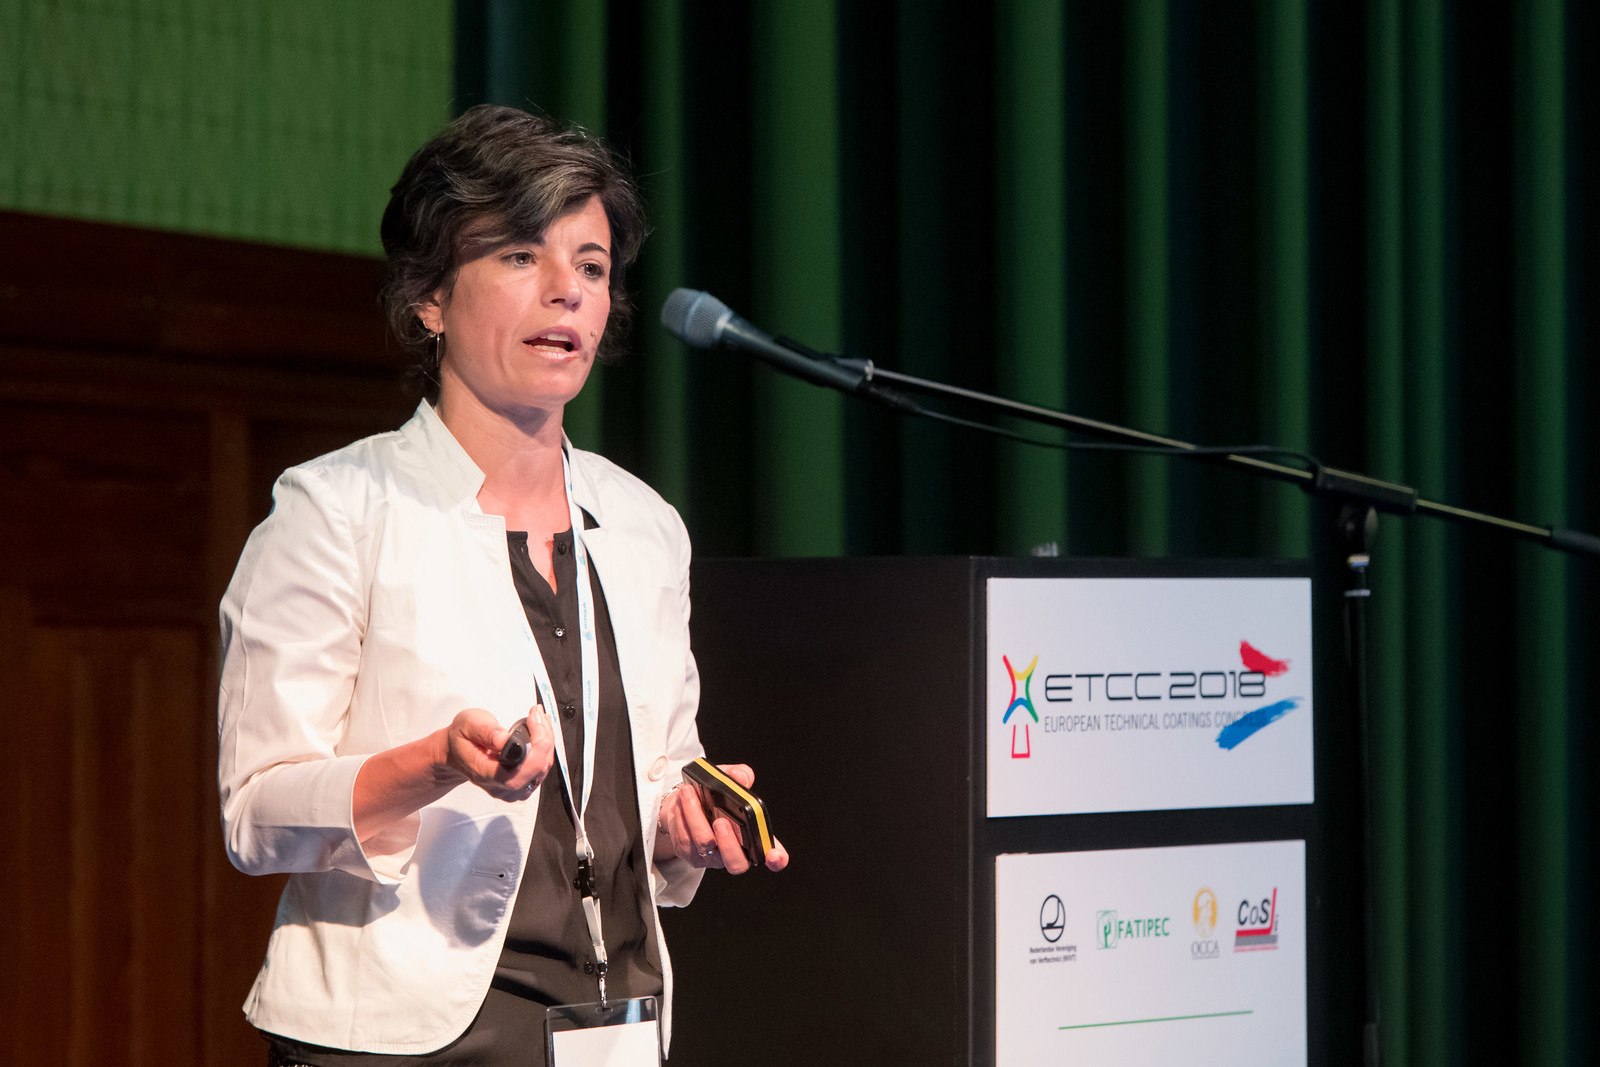 Dr. Eva Tejada and co-authors, Covestro, received the Alain Clause Award for best lecture on ecological and environmentally compatible developments. (Source: Covestro)